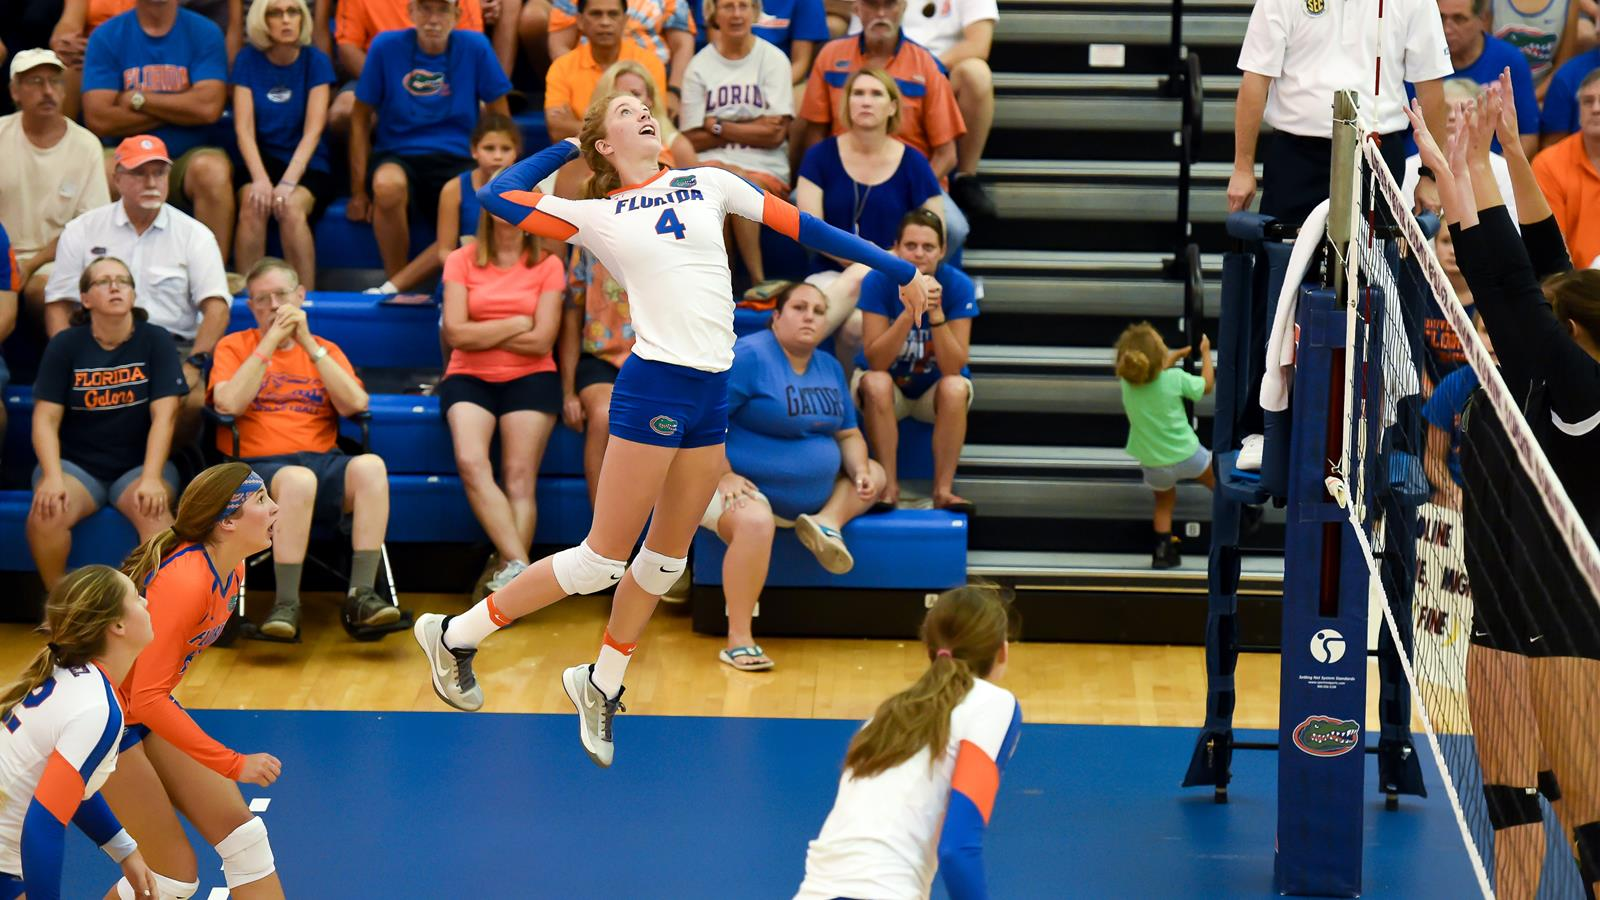 Carli Snyder Volleyball Florida Gators